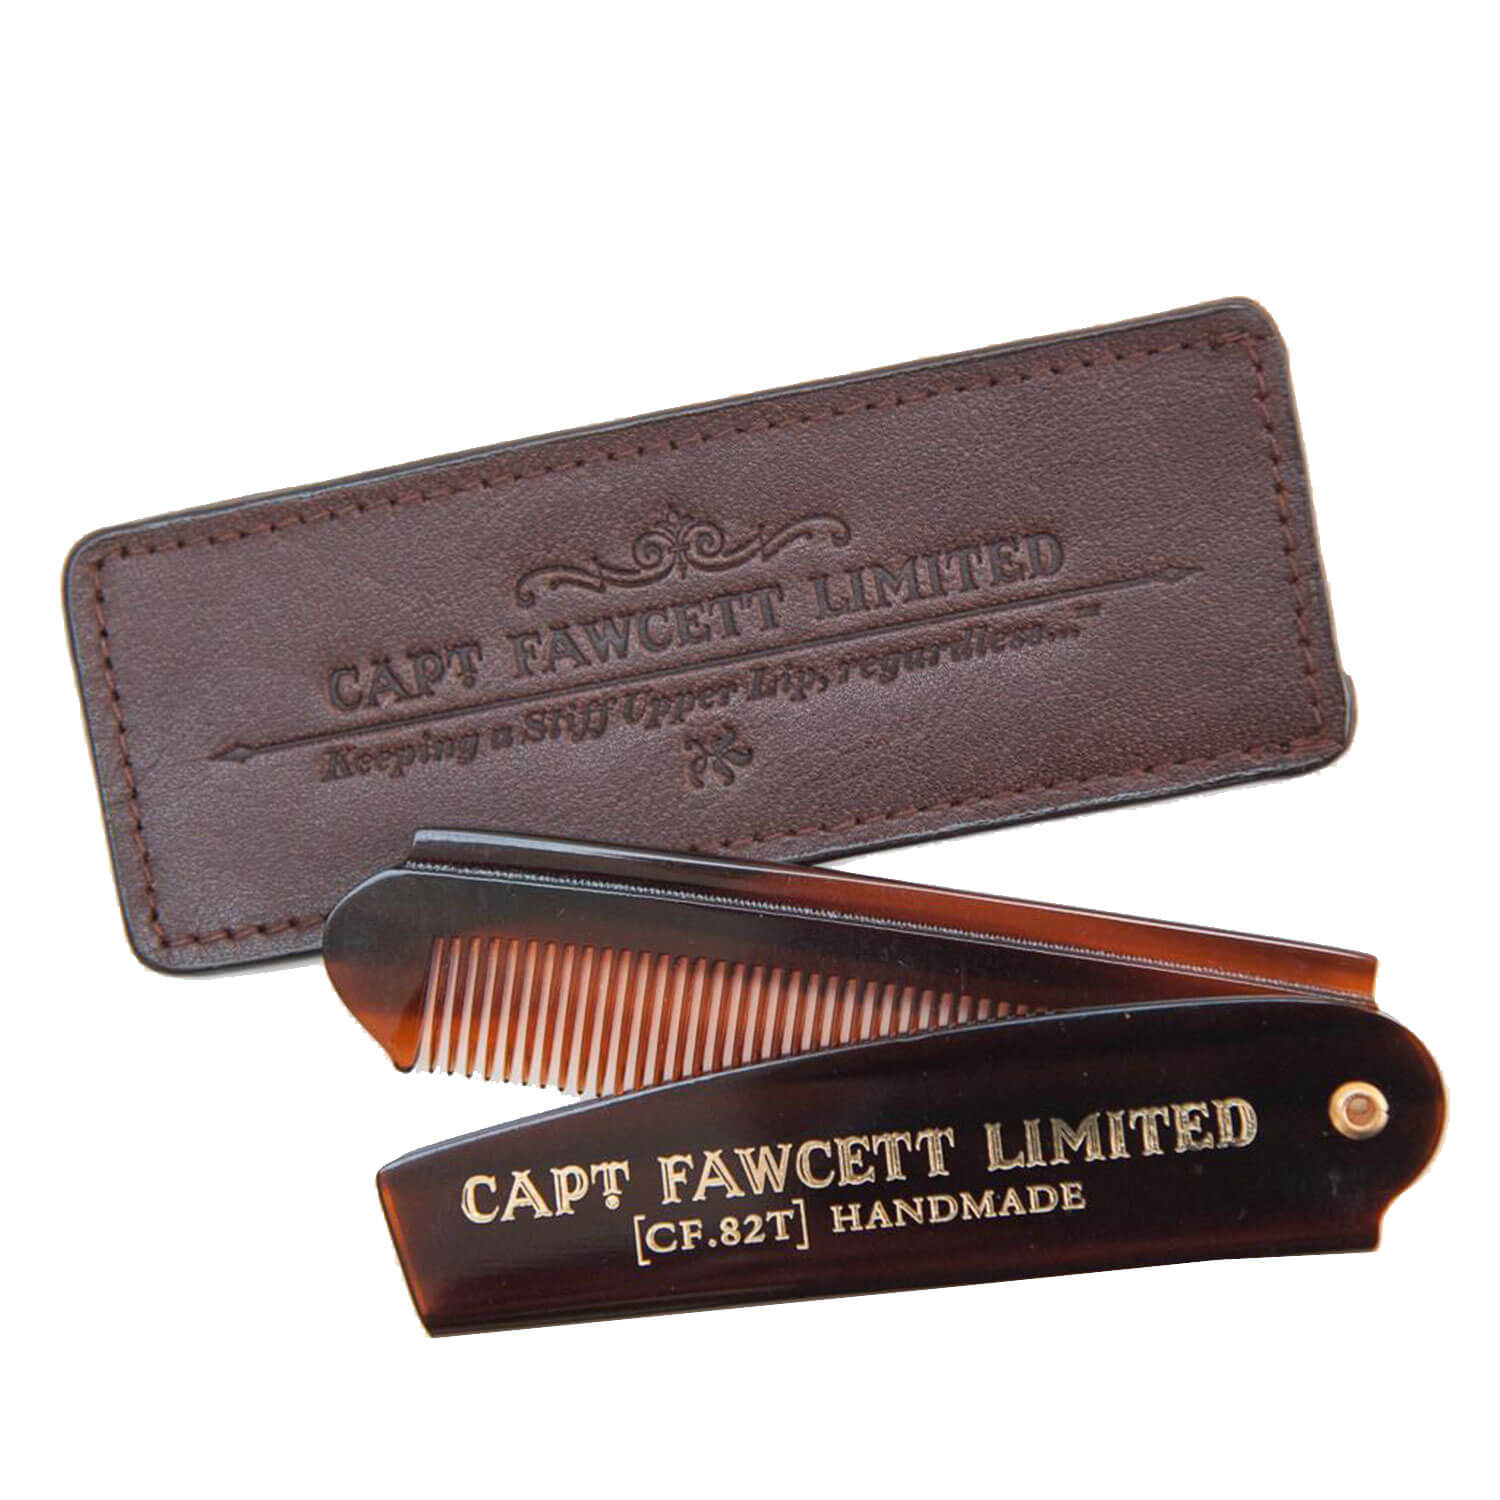 Capt. Fawcett Tools - Folding Pocket Beard Comb with Leather Case